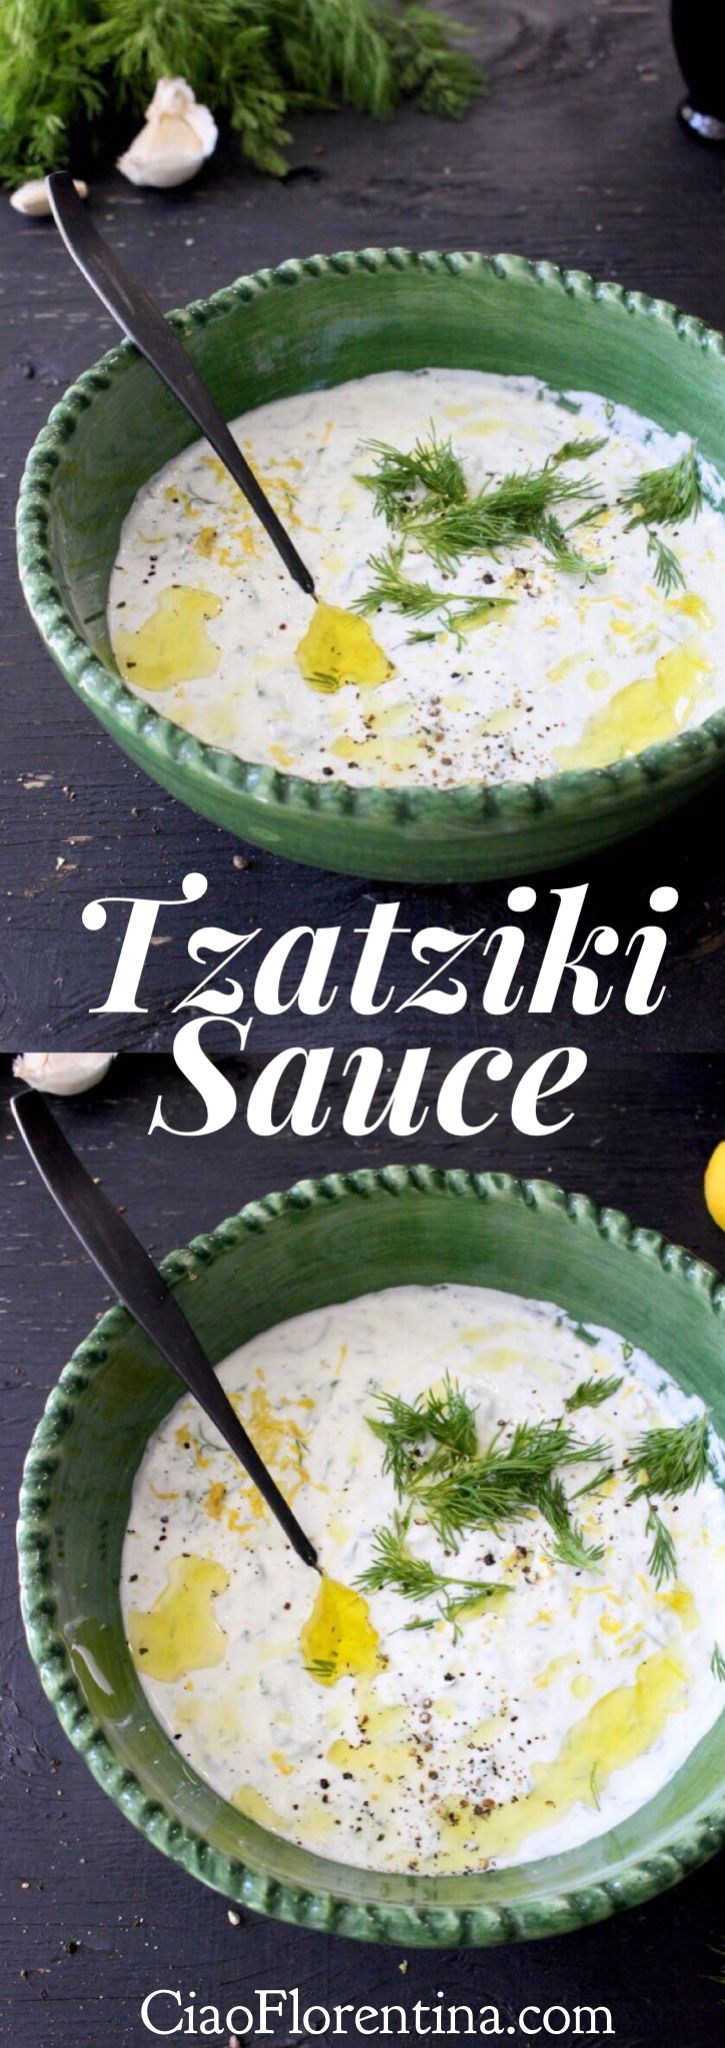 Tzatziki Sauce Recipe with Thick Greek Yogurt, Garlic, Cucumber and Lemon | CiaoFlorentina.com @CiaoFlorentina